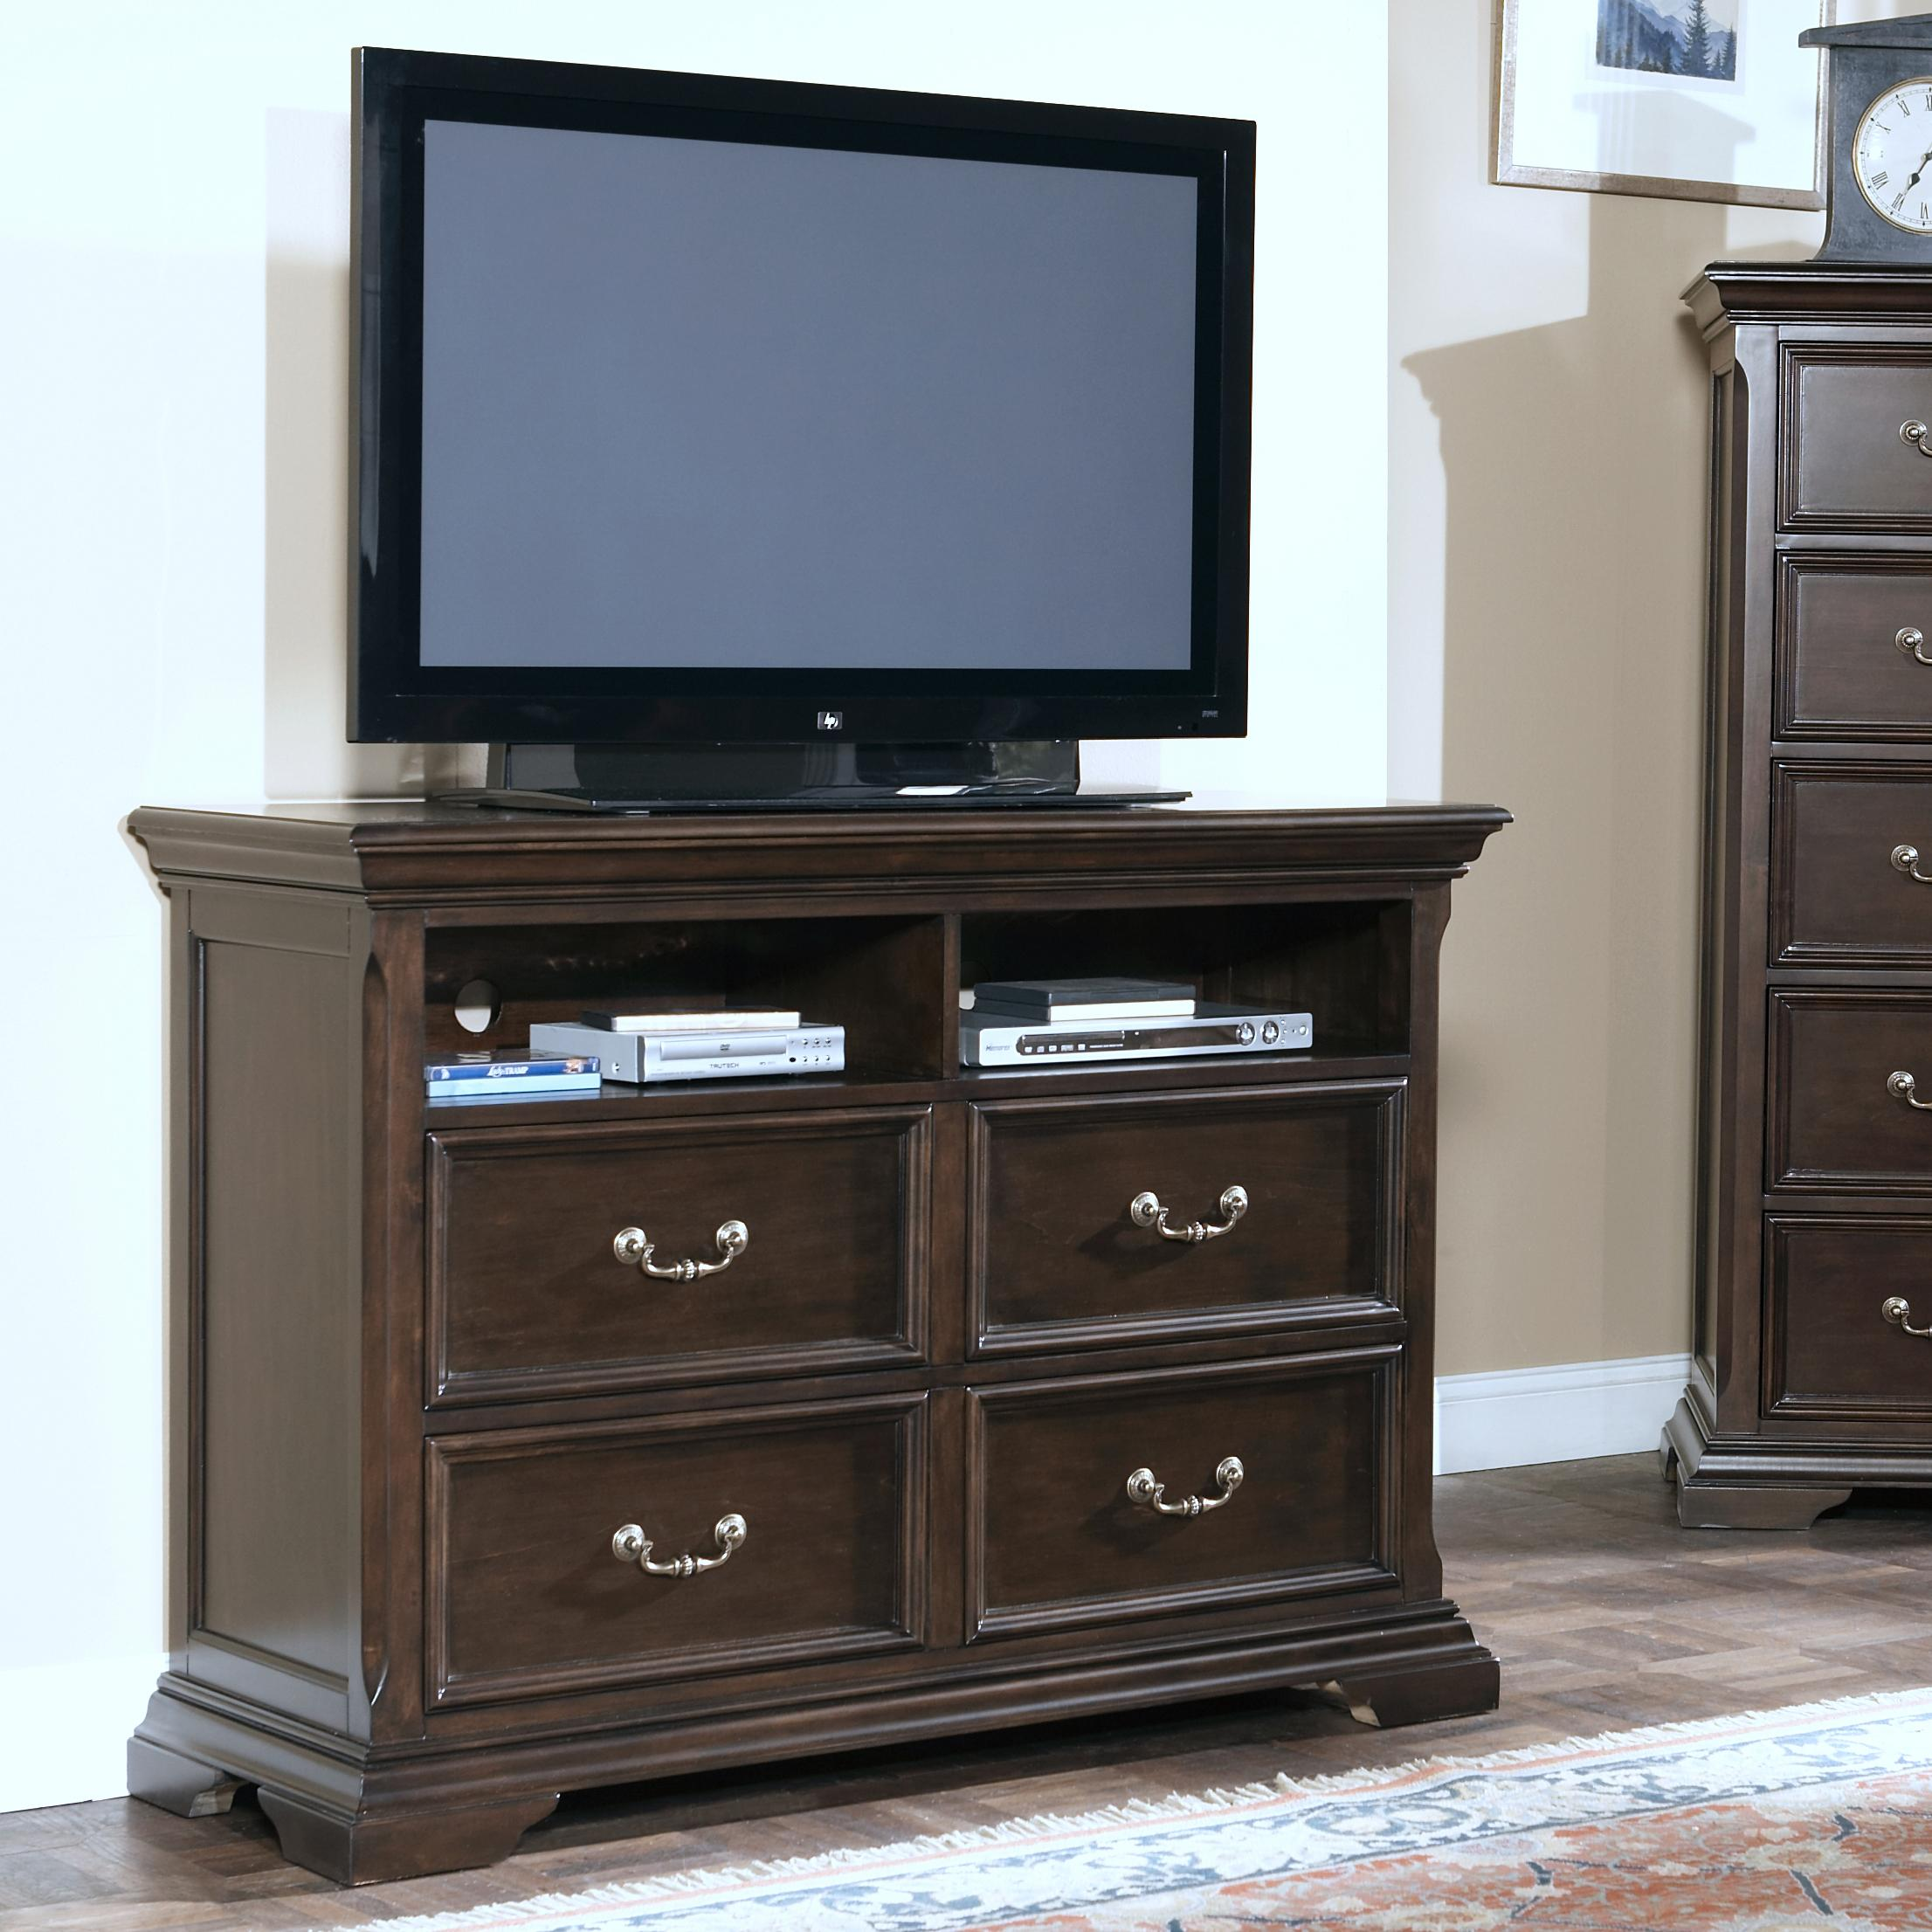 Timber City Four Drawer Media Chest at Lapeer Furniture & Mattress Center